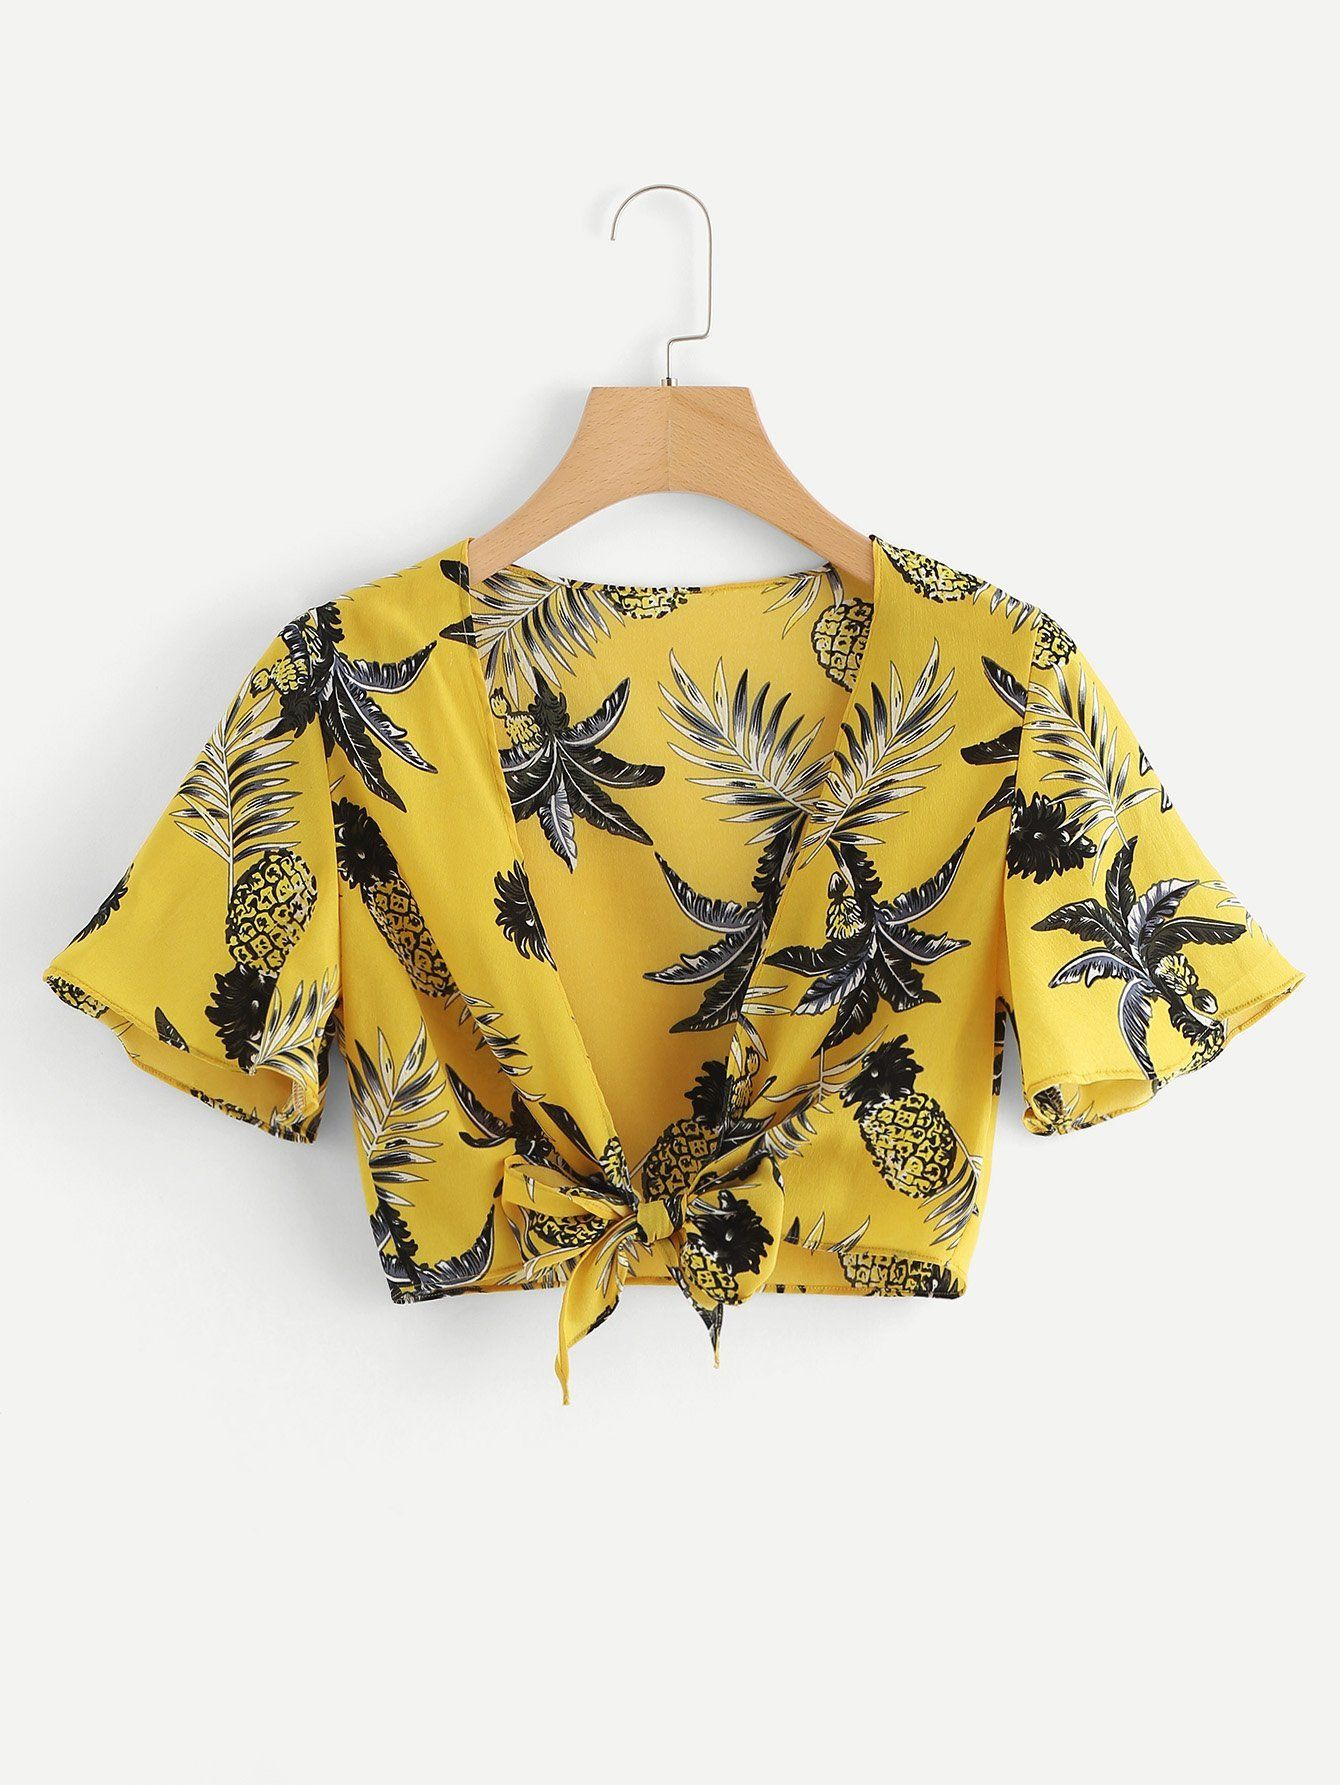 Pineapple print knot front top in fashion pinterest